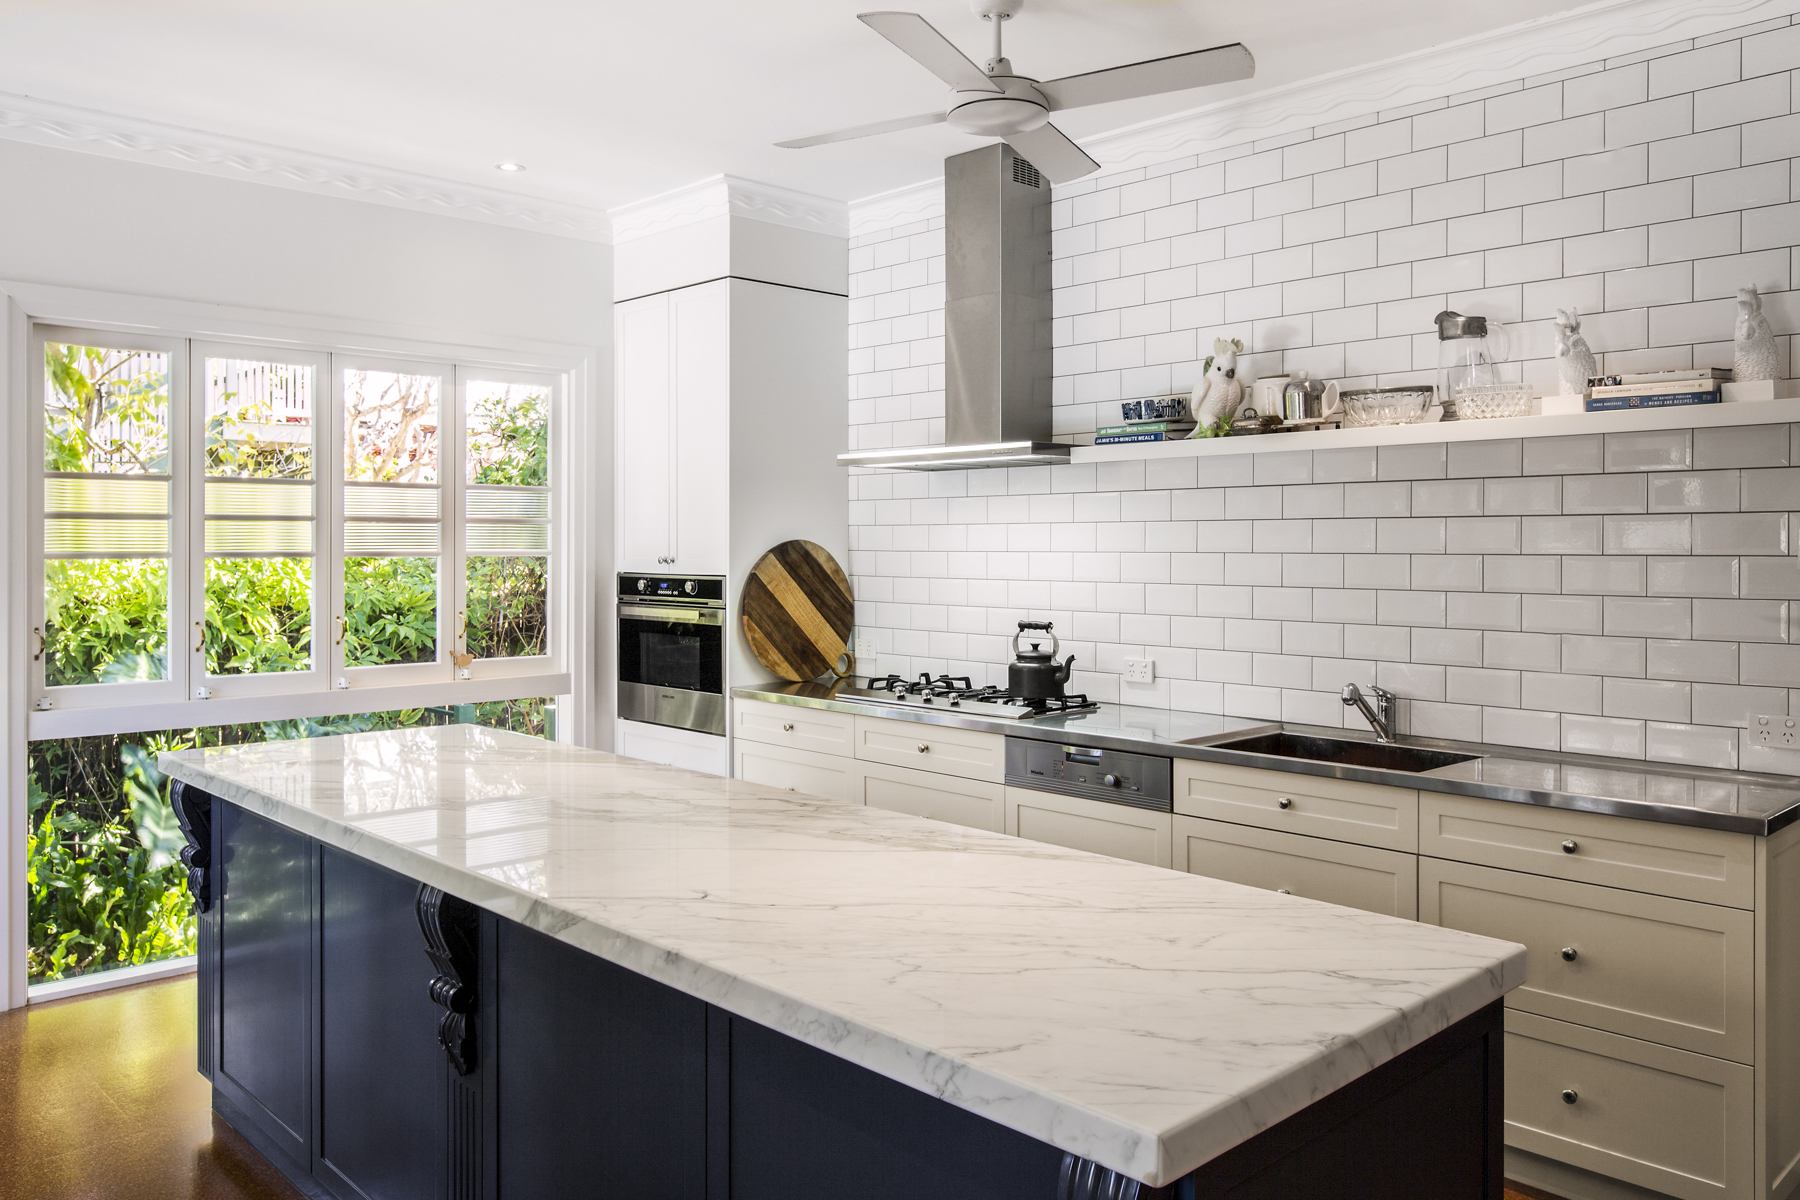 Kitchens Brisbane - Design and Renovations | Konstruct Interior ...